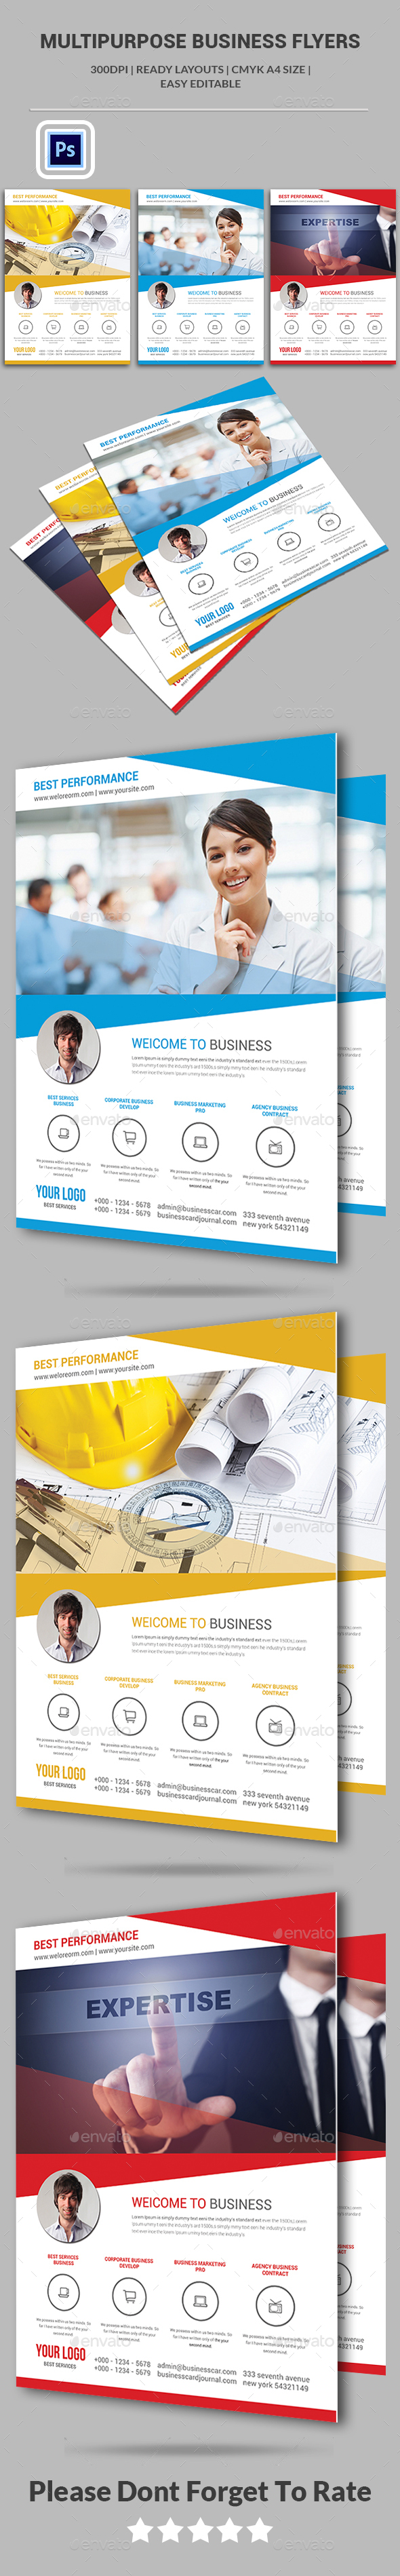 Multipurpose Business Flyers - Corporate Flyers